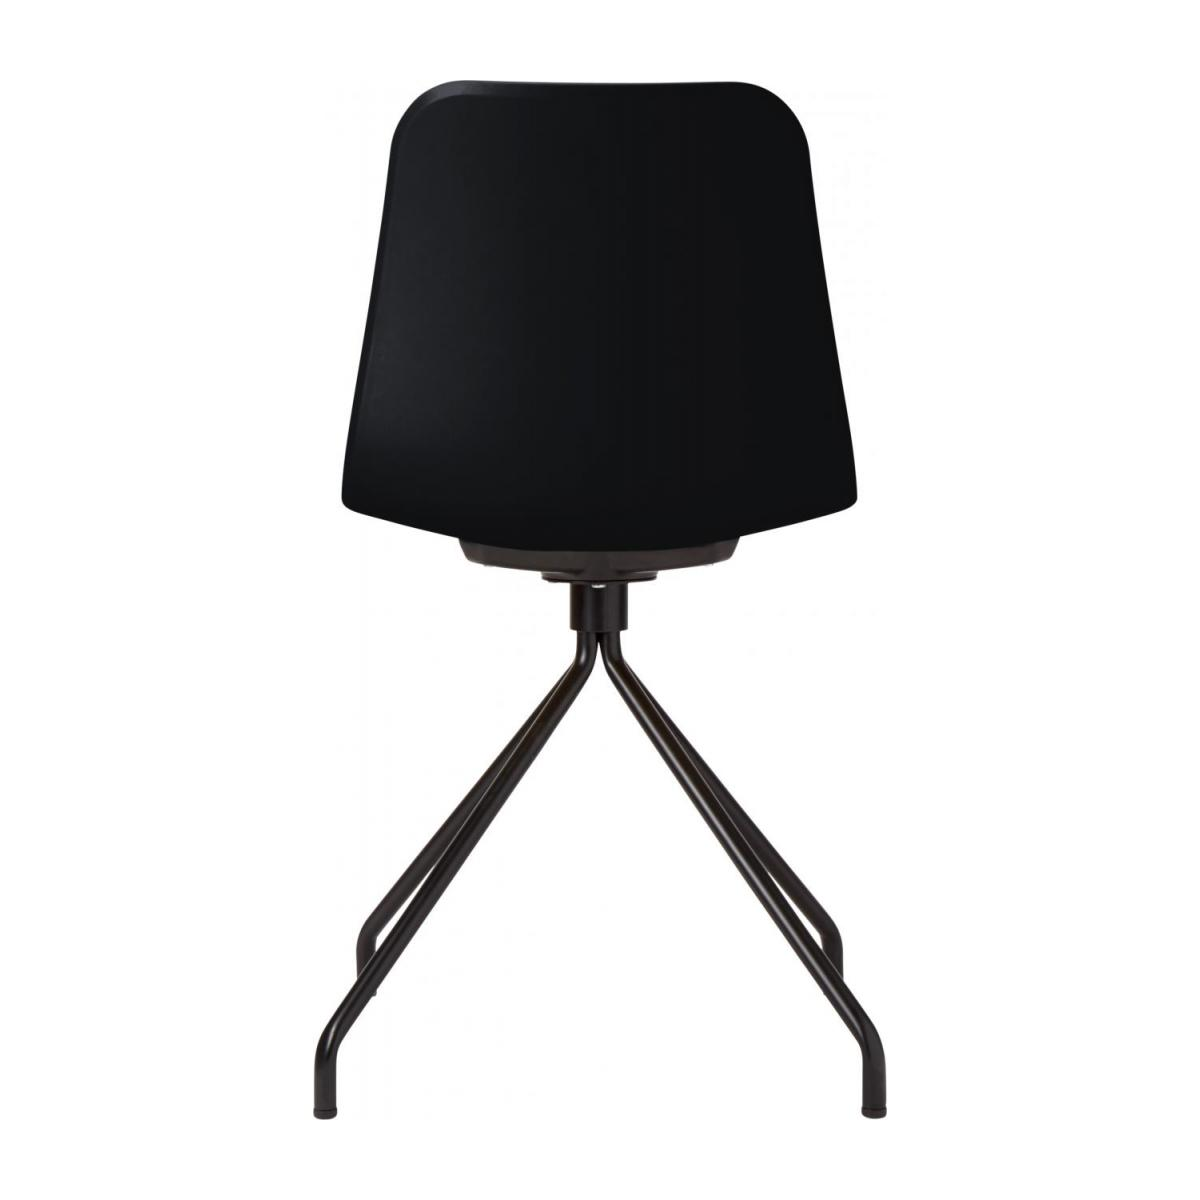 Black chair in polypropylene and lacquered steel legs n°4